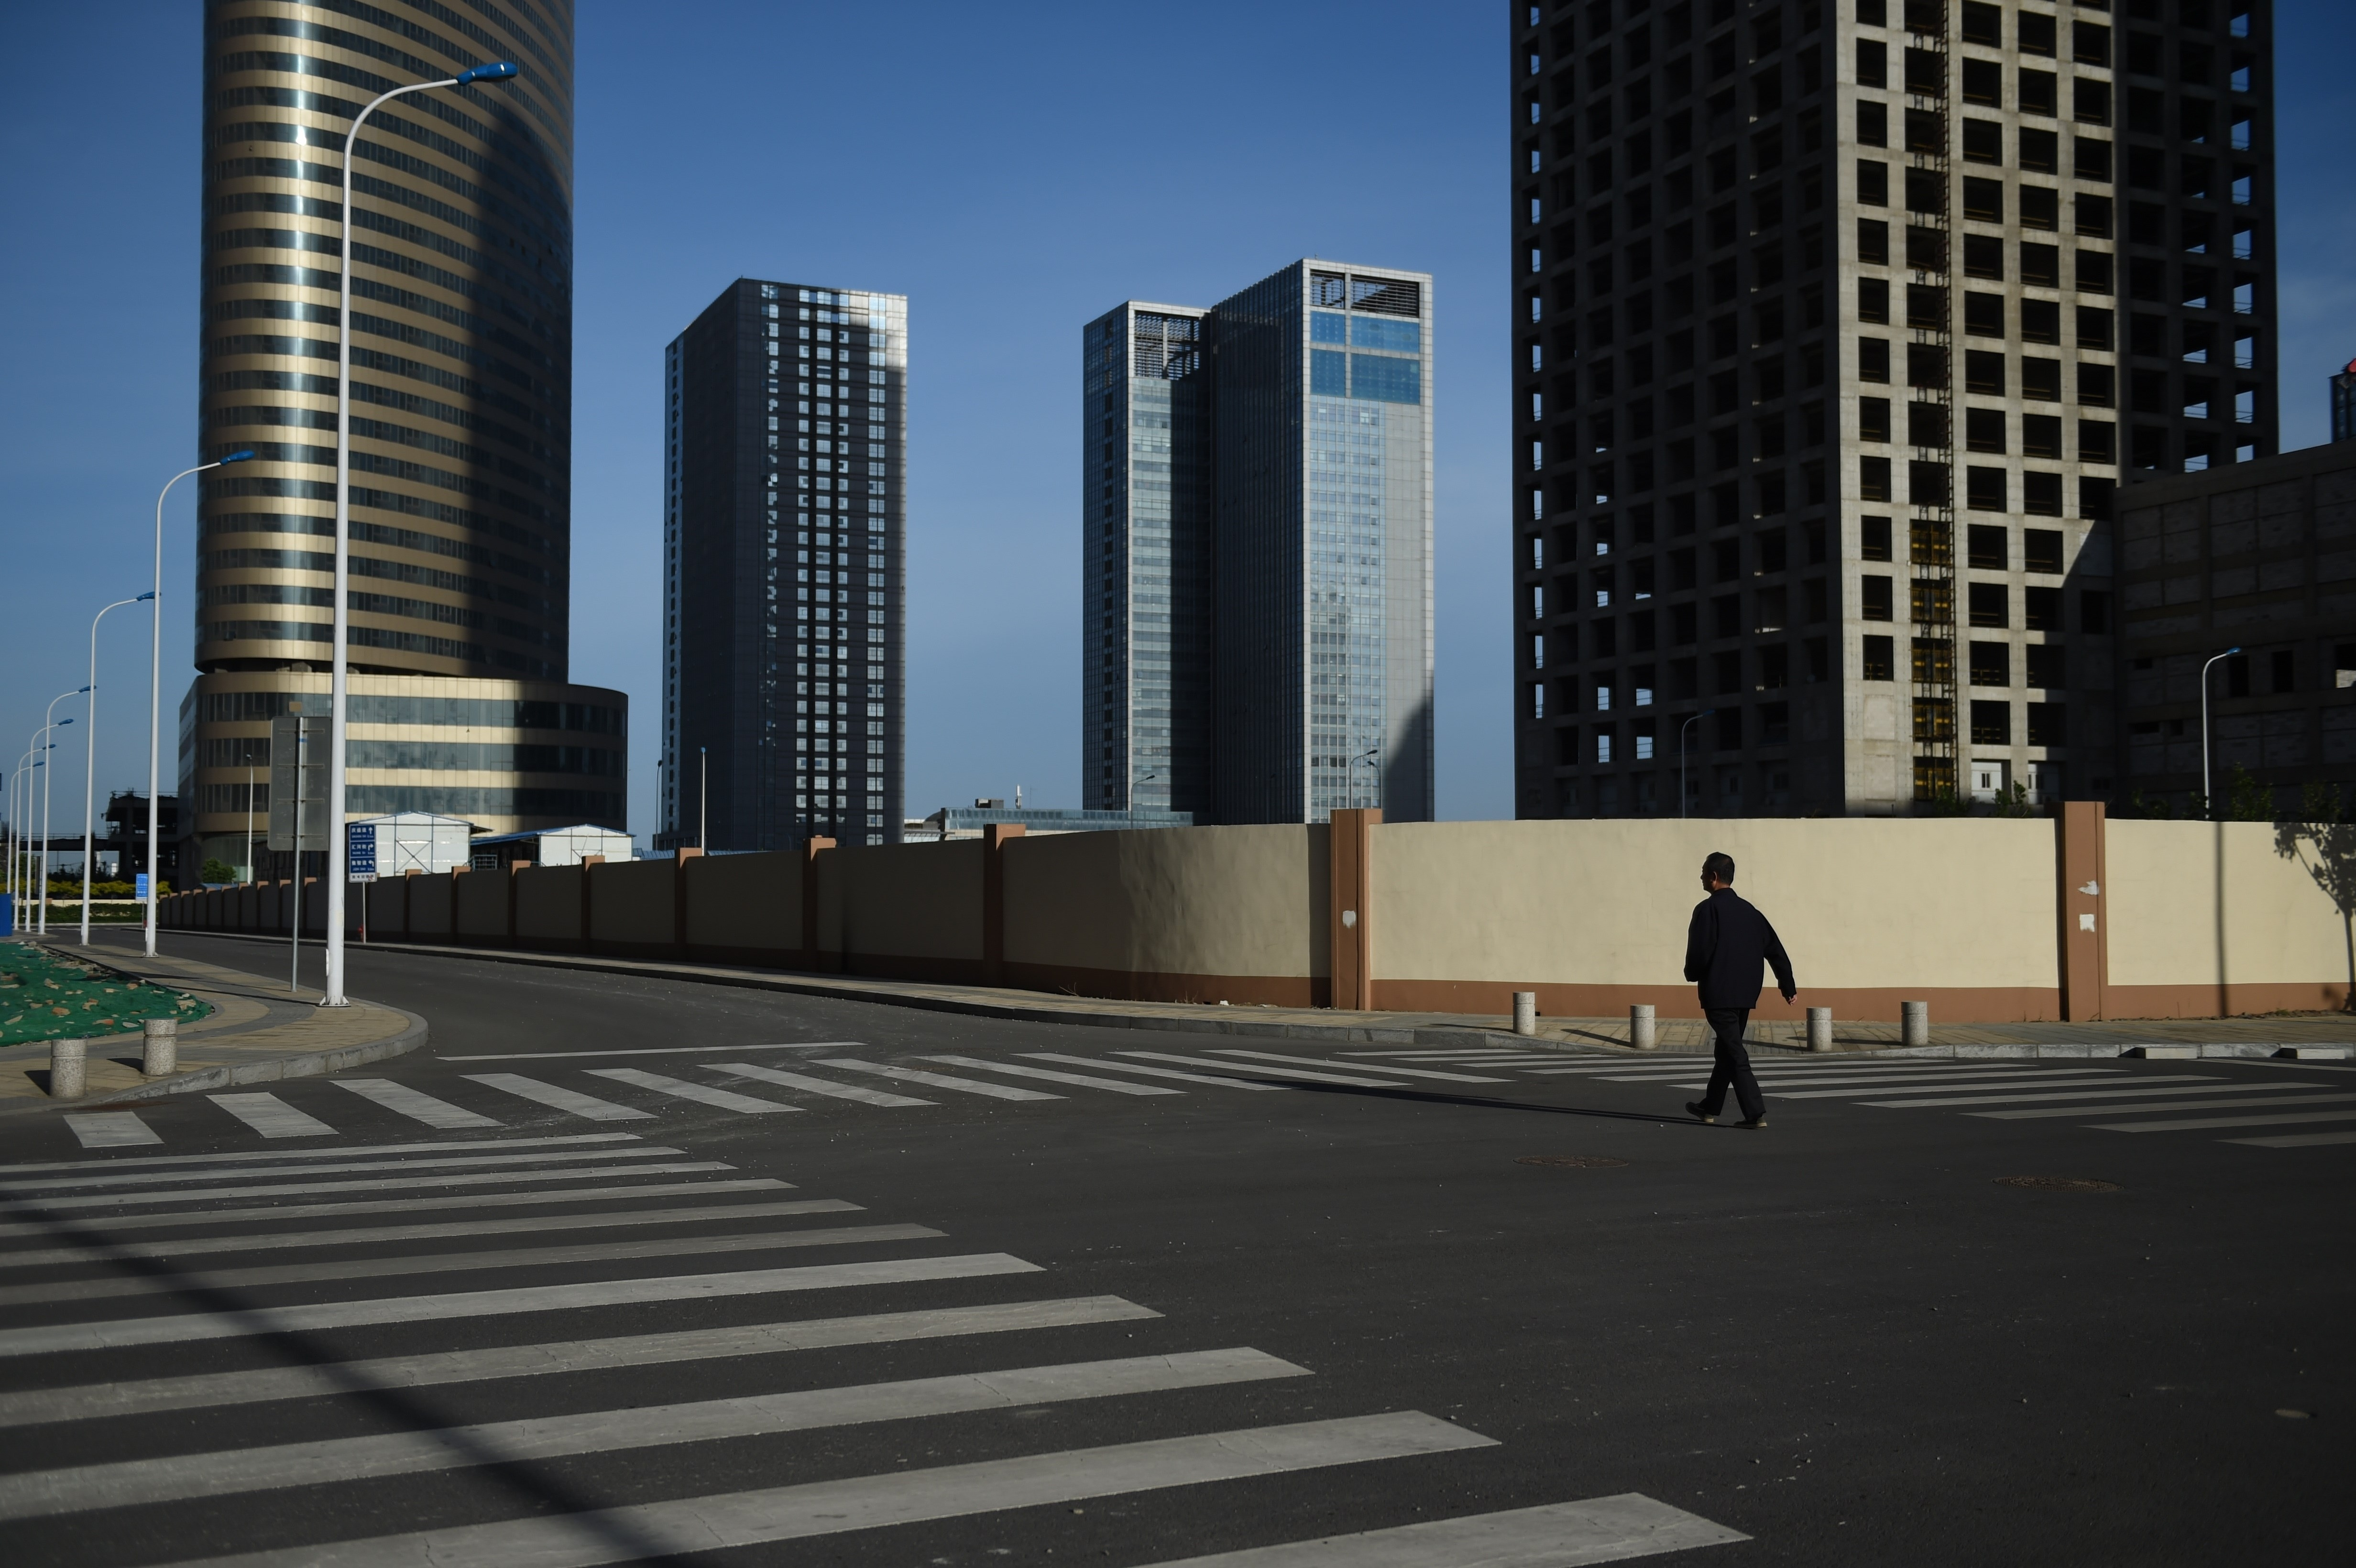 We Know China Has Ghost Cities, But Where Are They Hiding?